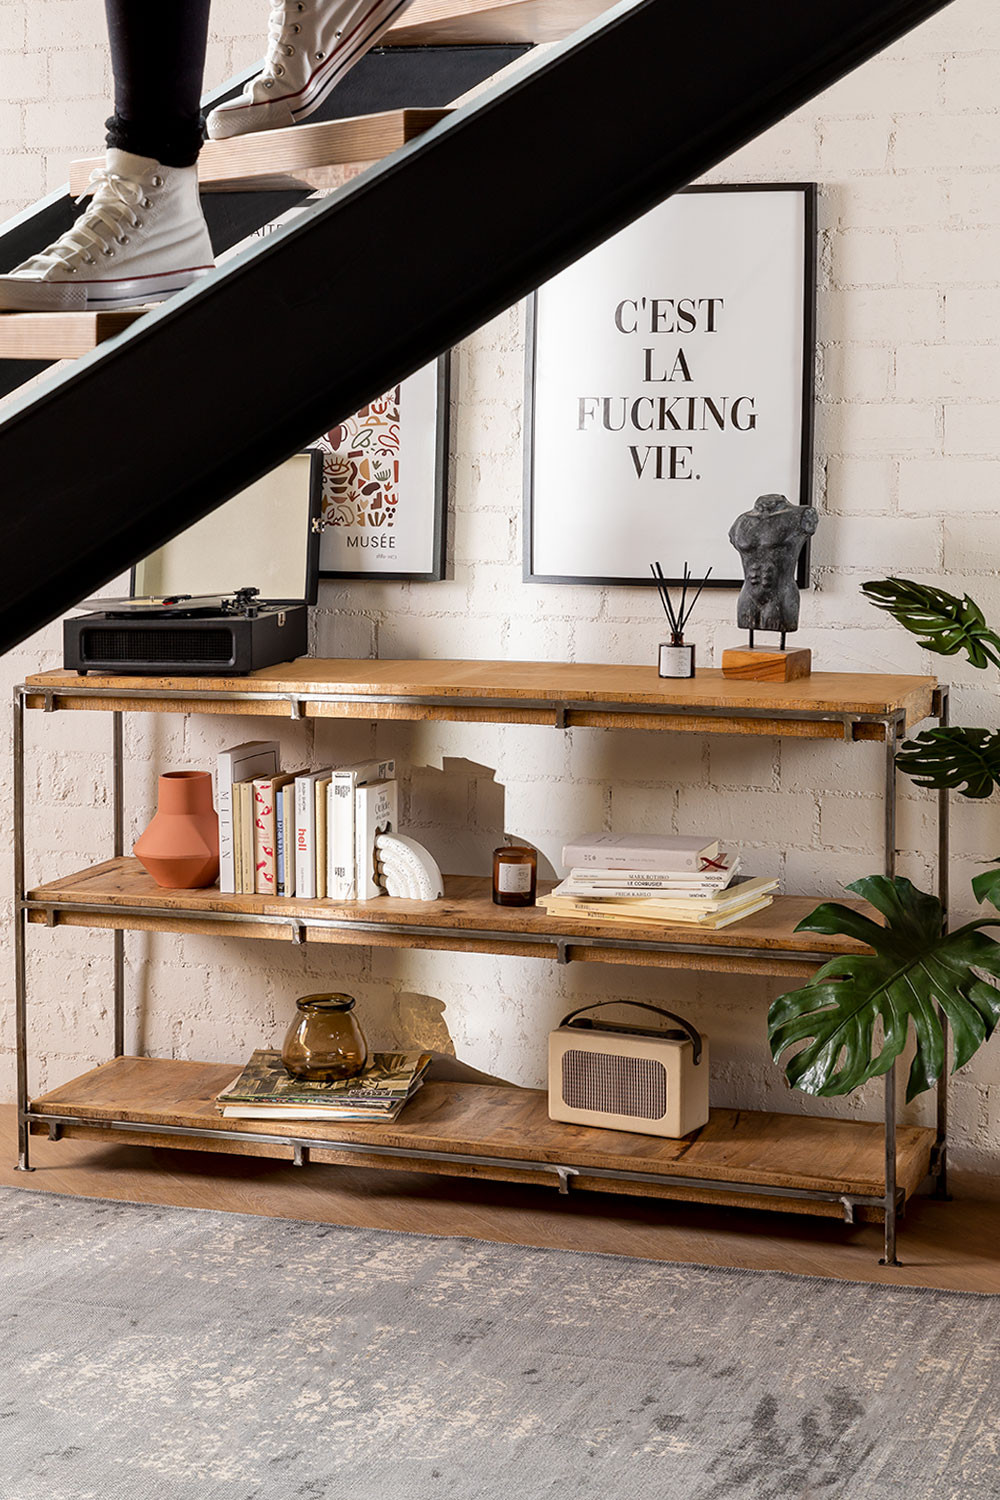 3 Shelves Inme, gallery image 1